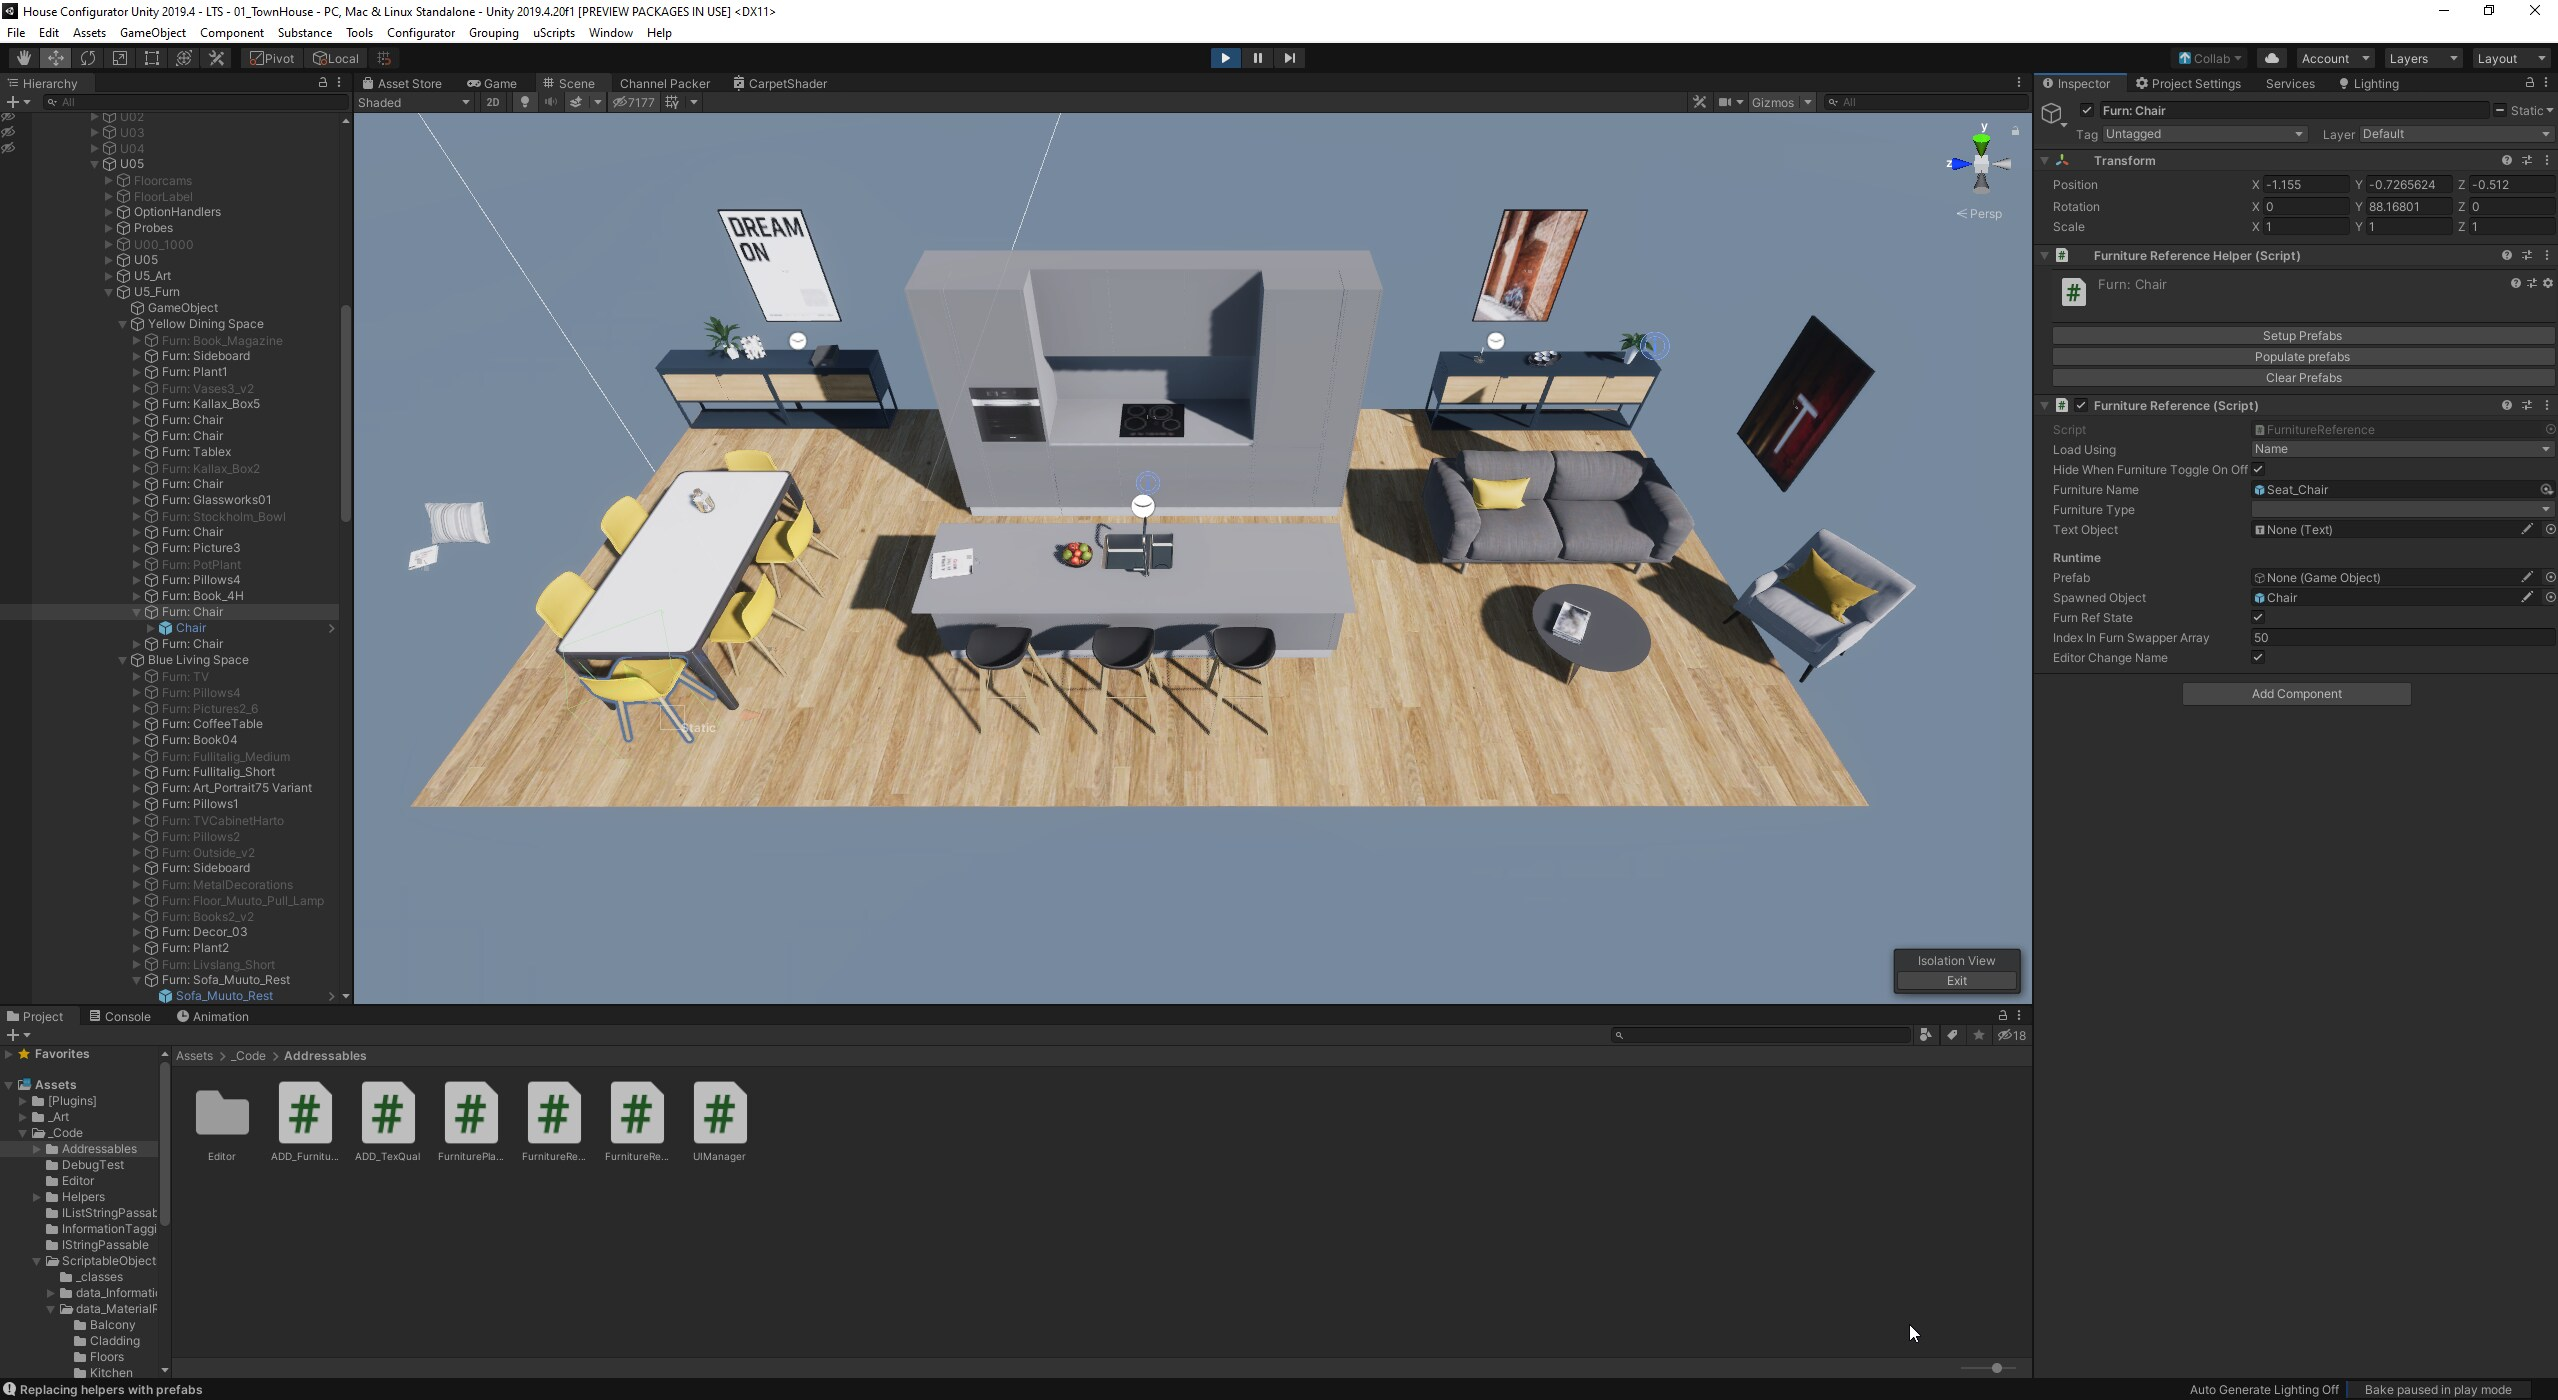 Screen cap of a 3D rendering of a room in Unity